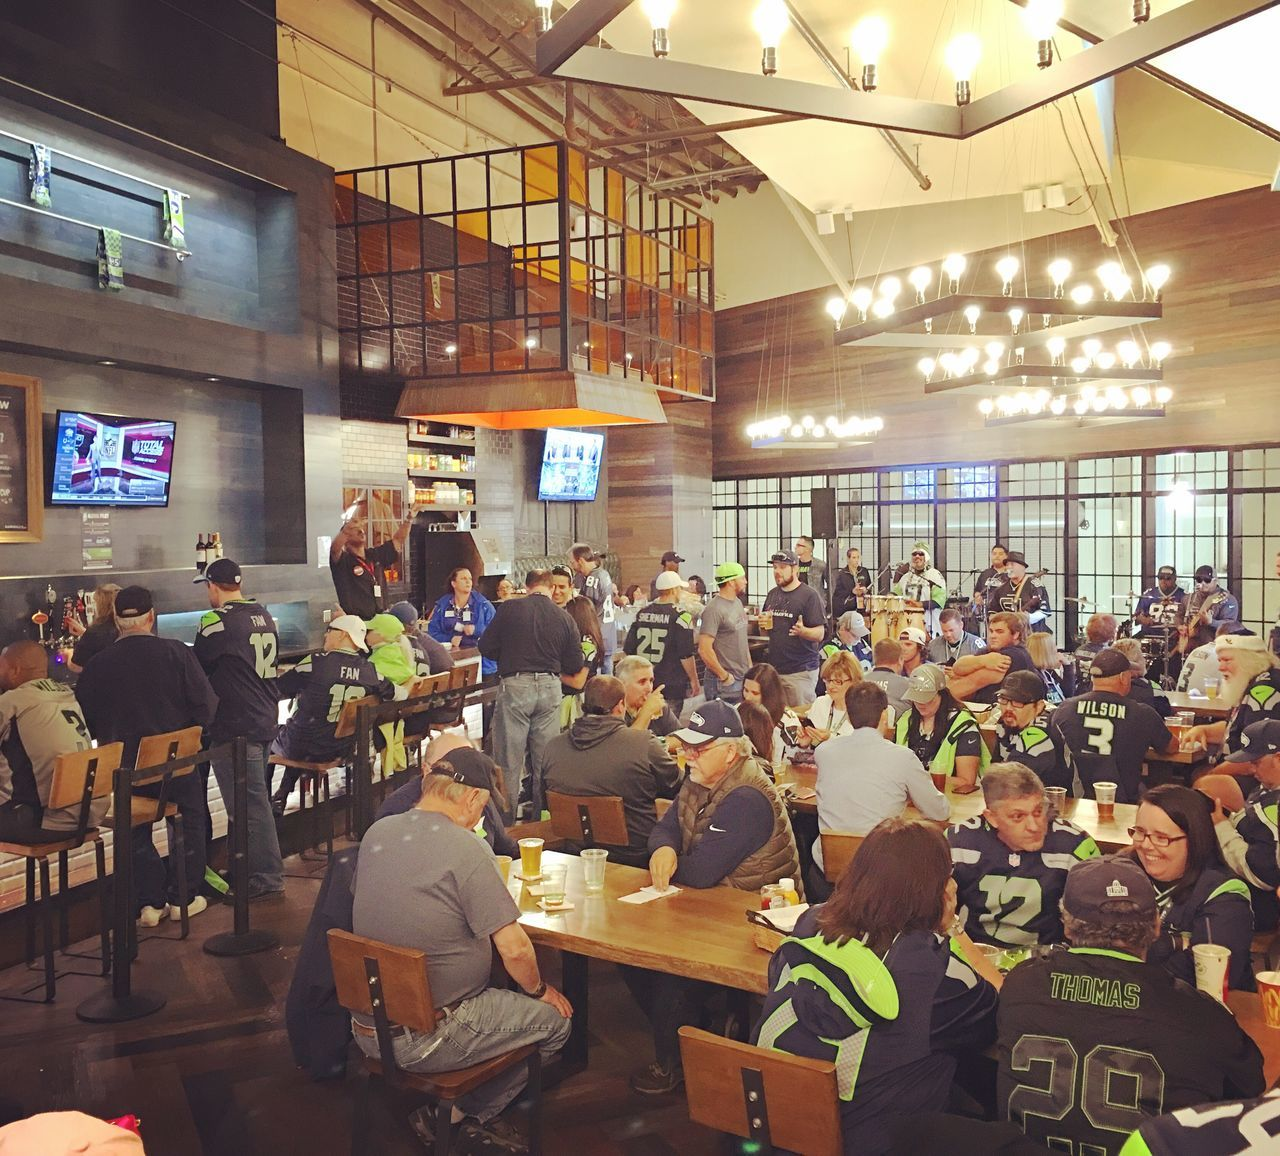 Gohawks 12s Seattle Seahawks Showcase: November Washington Washington State PNW Pacific Northwest